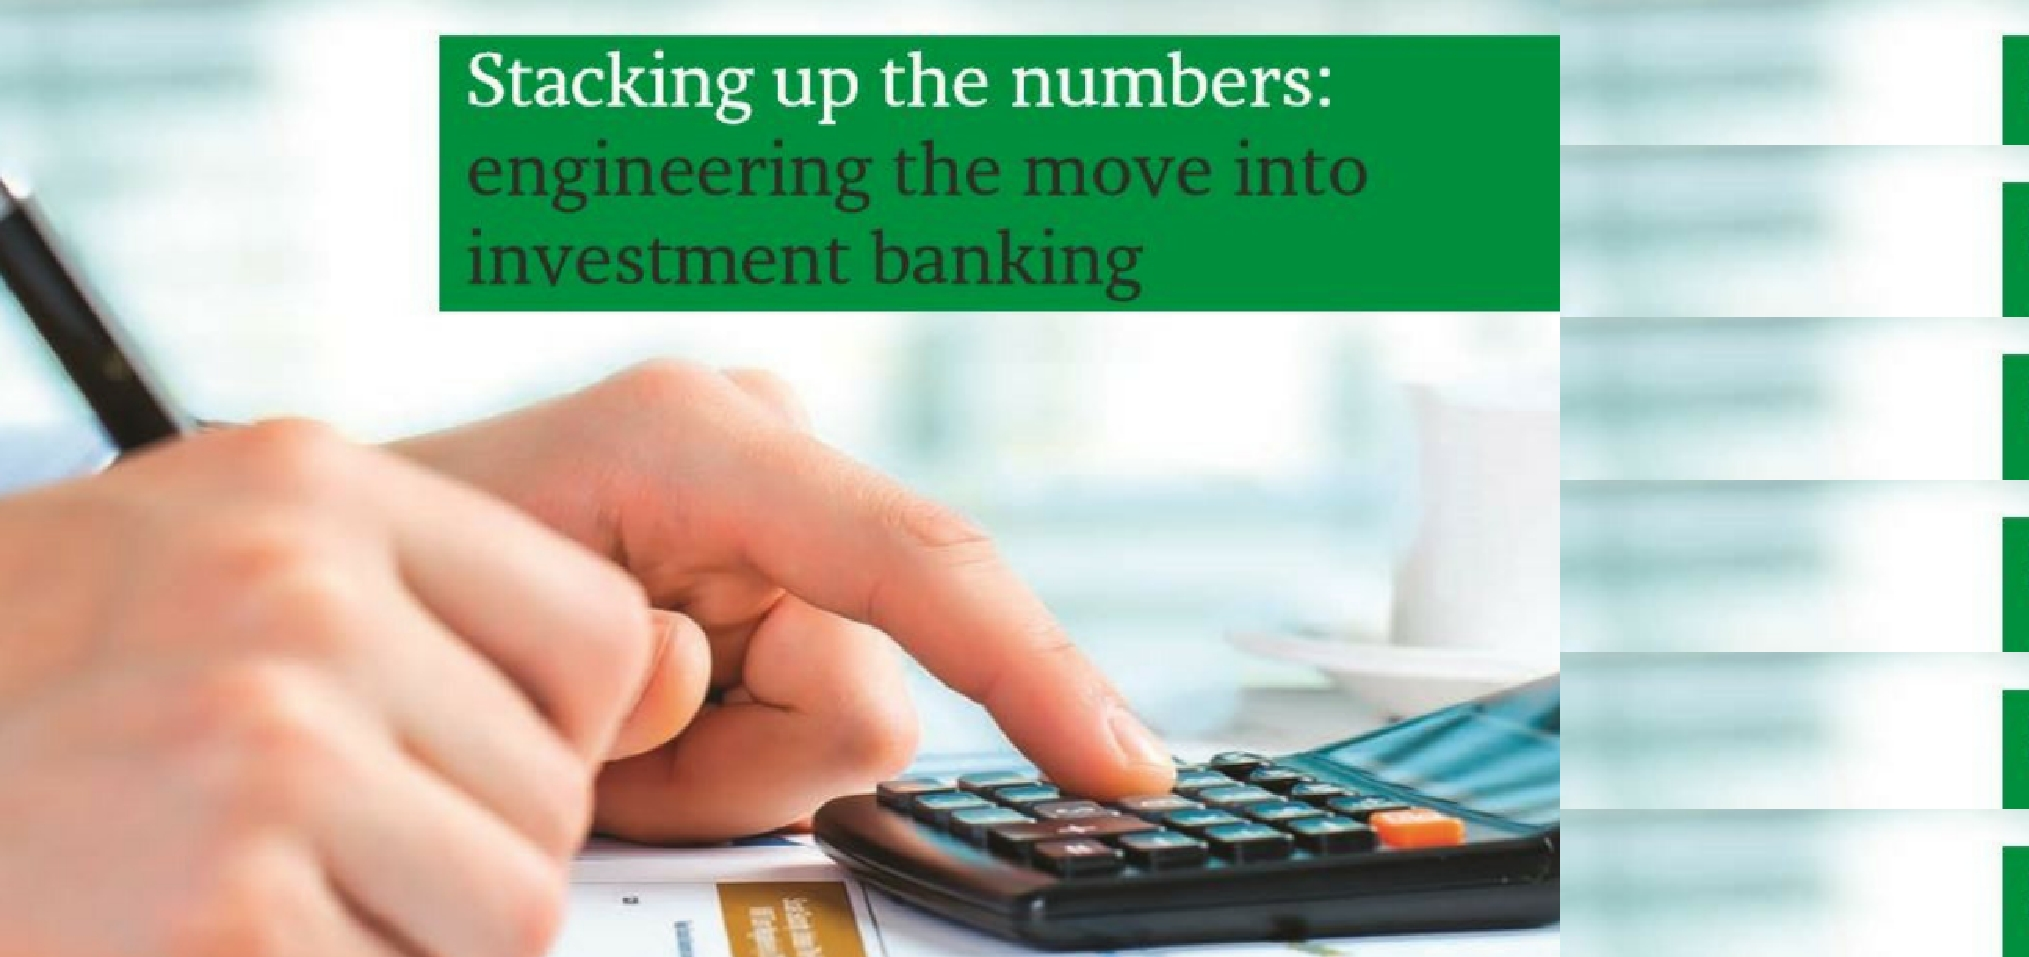 engineering the move into investment banking